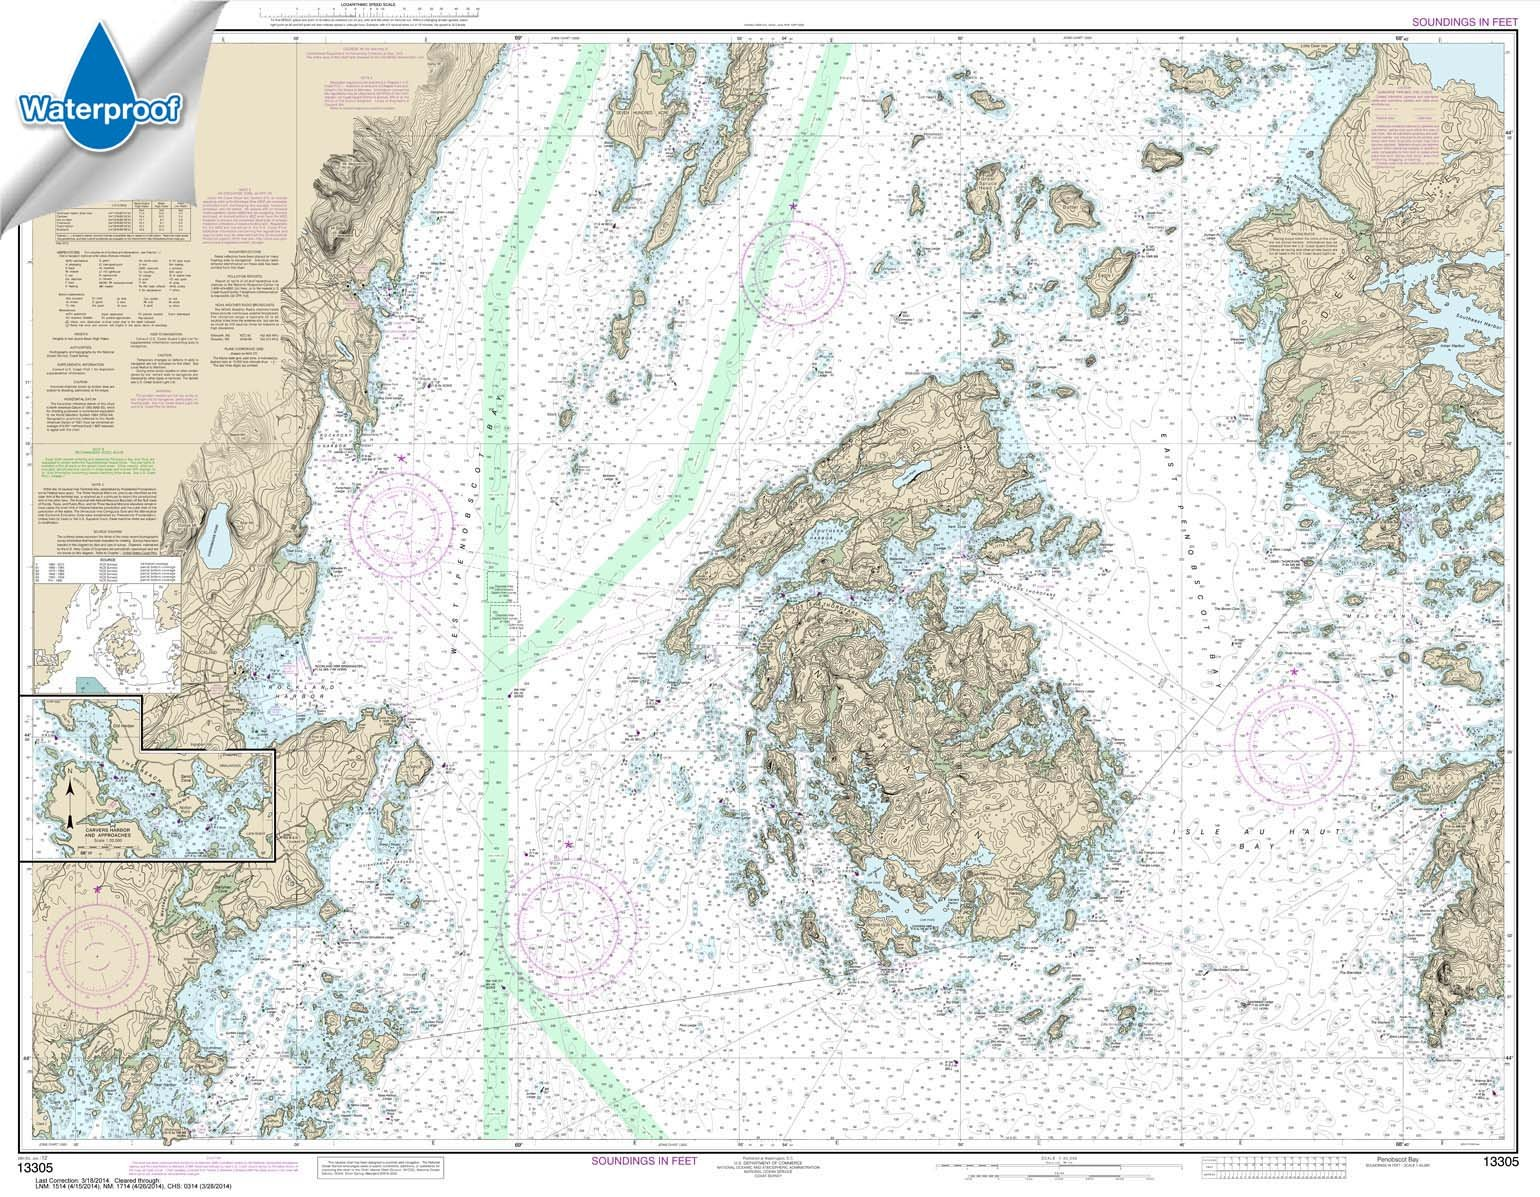 NOAA Chart 13305: Penobscot Bay; Carvers Harbor and Approaches 35.5 x 45.7 (WATERPROOF)